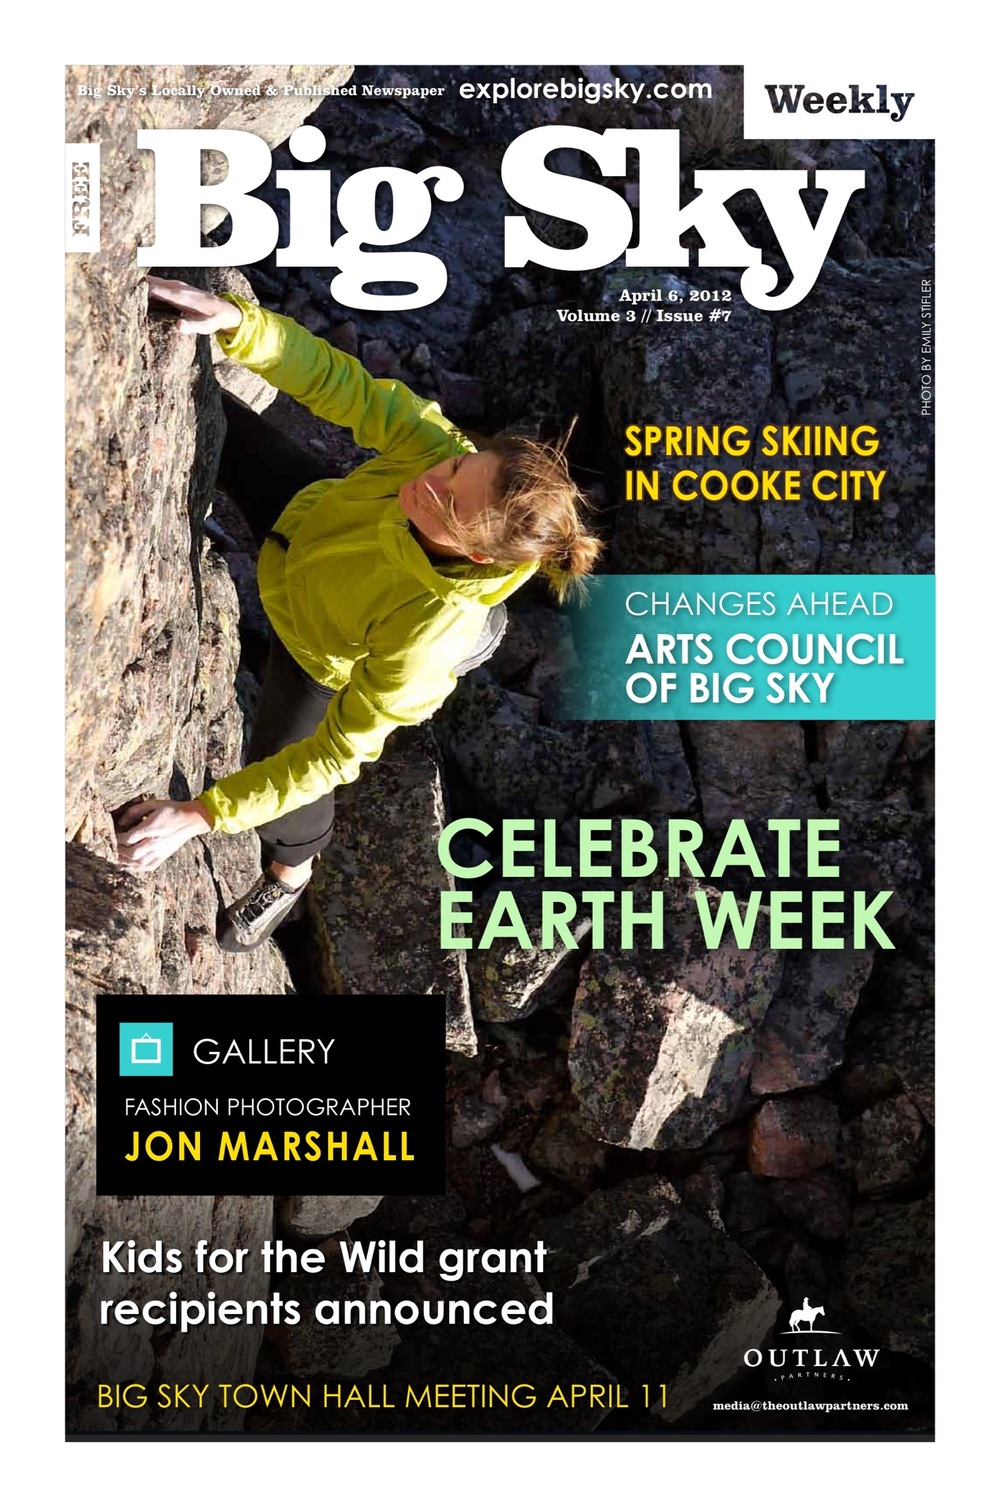 Cover photo Anne Gilbert Chase solo on Gallatin Canyon's Skyline Arête  There's gold in them hills If snow is money, Cooke City is one of the richest places on Earth.  Big Sky Weekly, April 2012